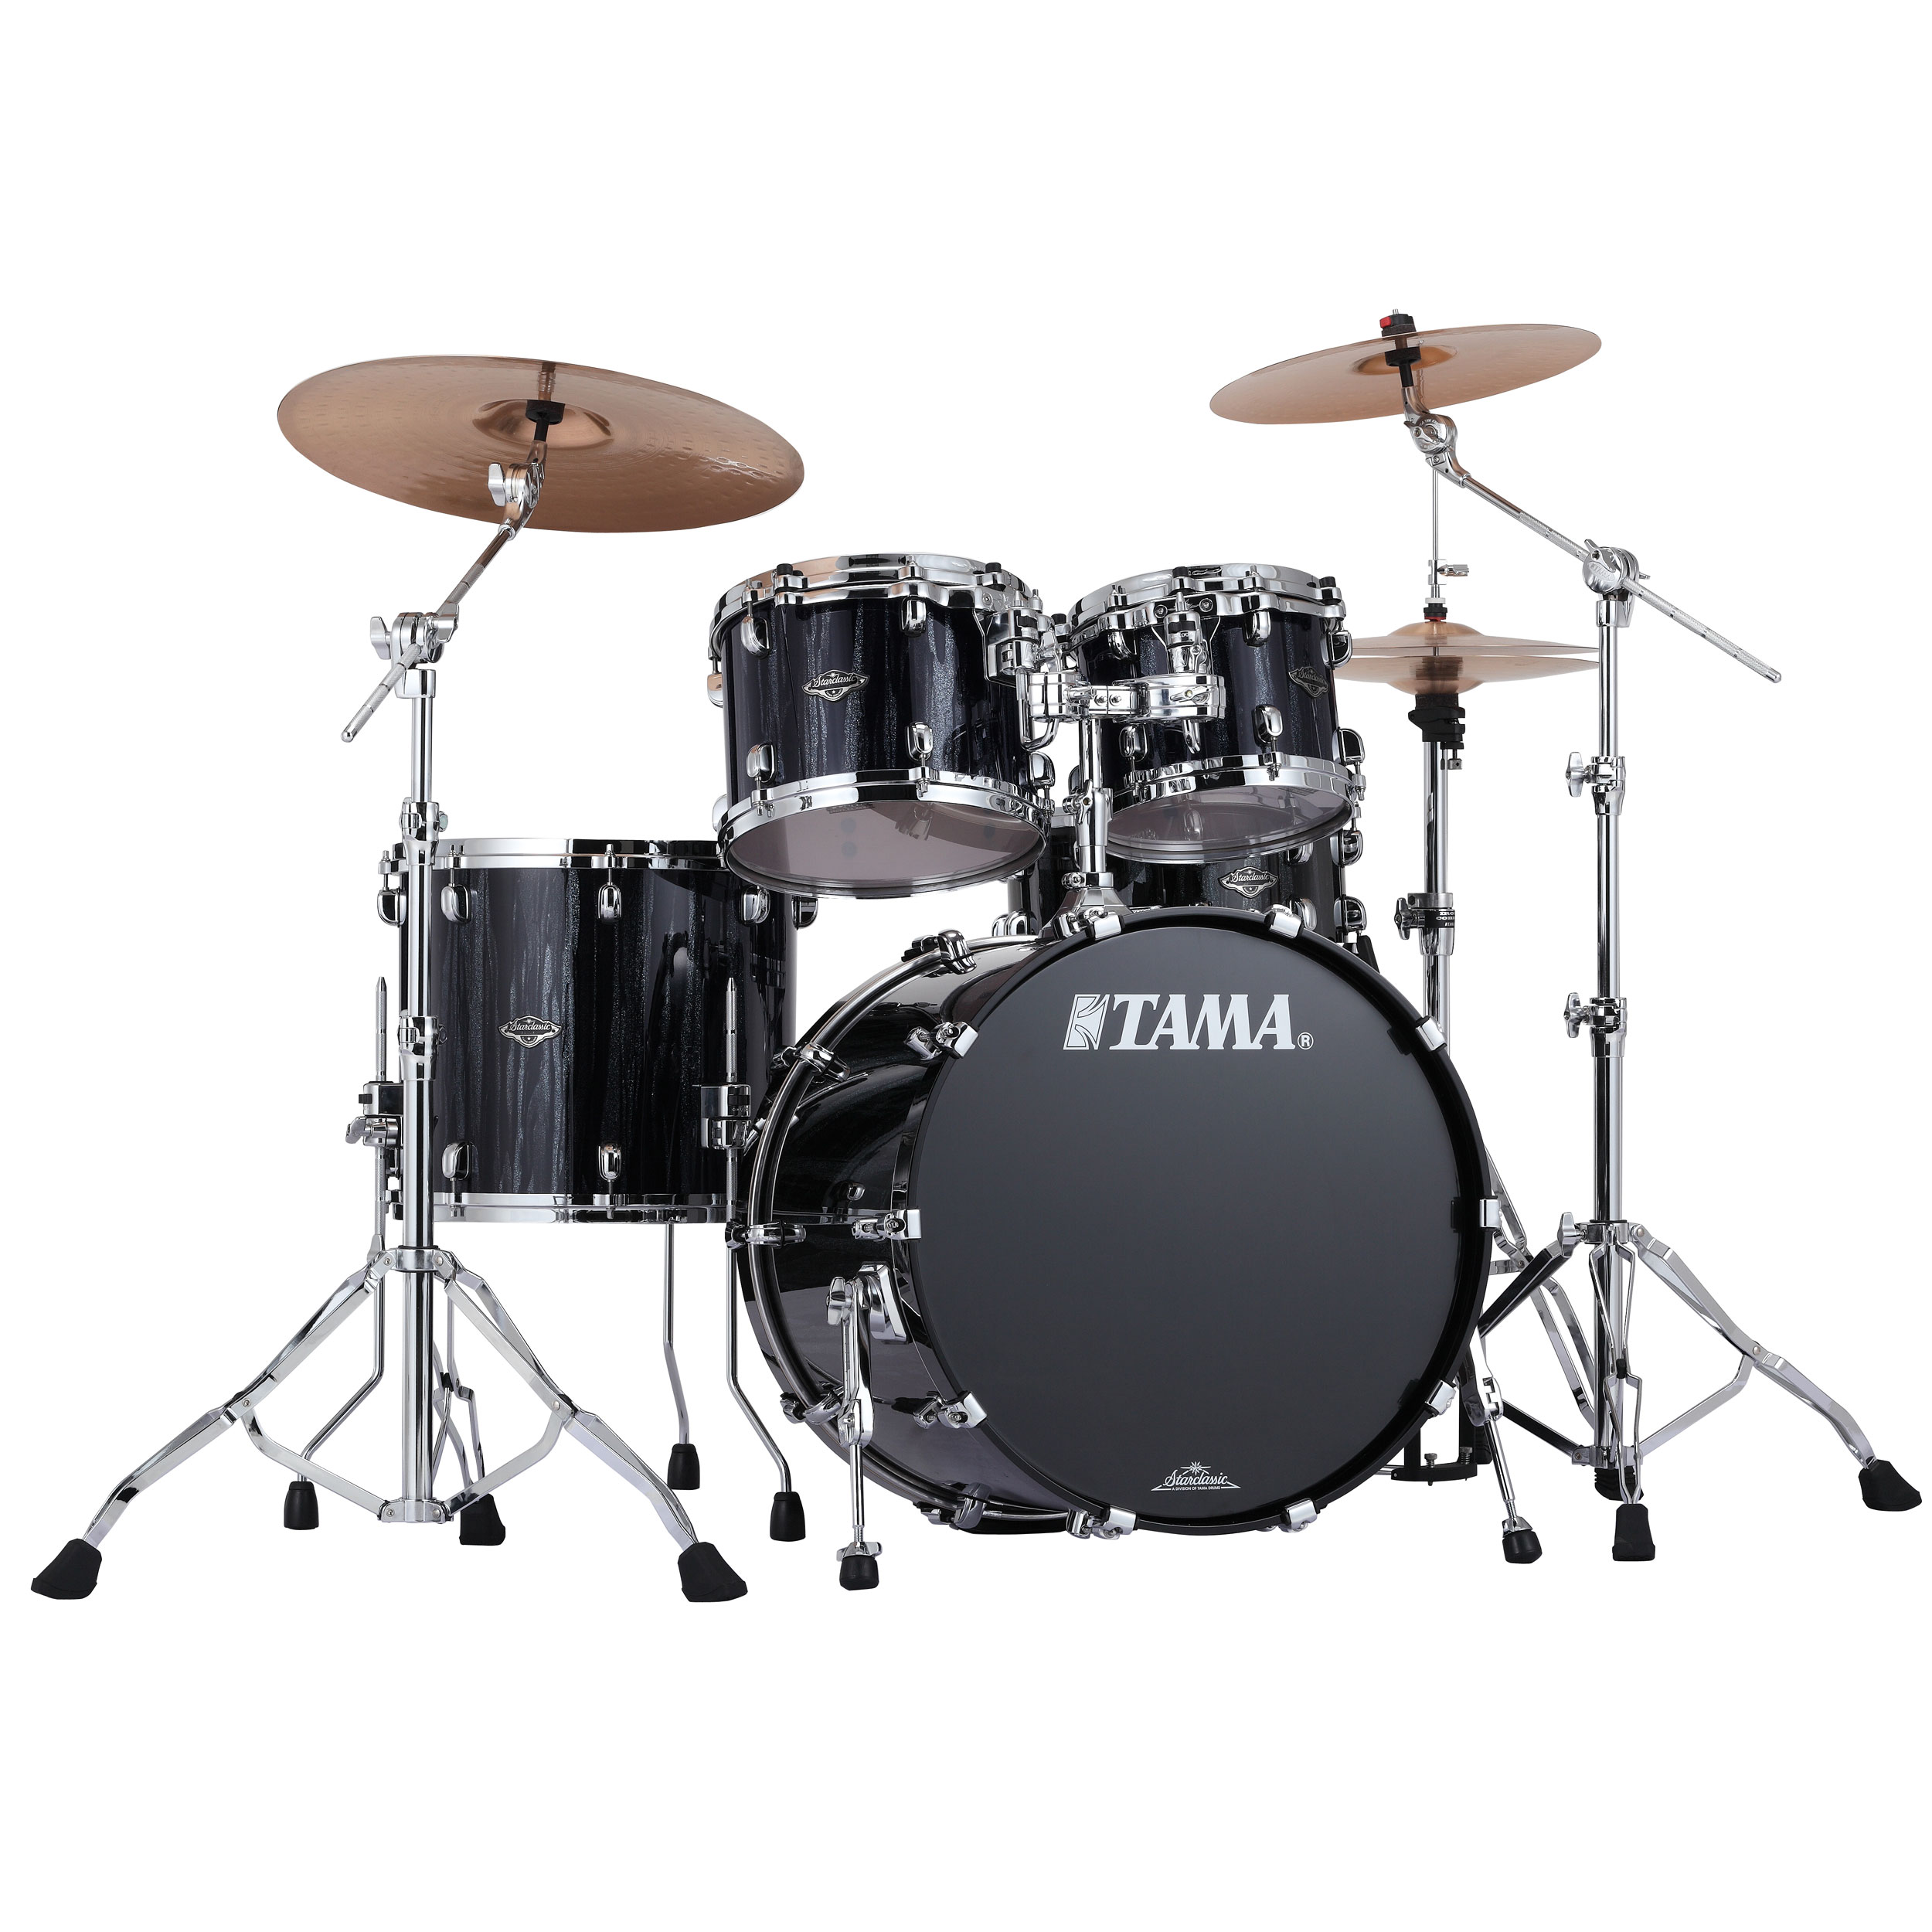 "Tama Starclassic Performer B/B 4-Piece Drum Set Shell Pack (22"" Bass, 10/12/16"" Toms) in Sparkle Finish"